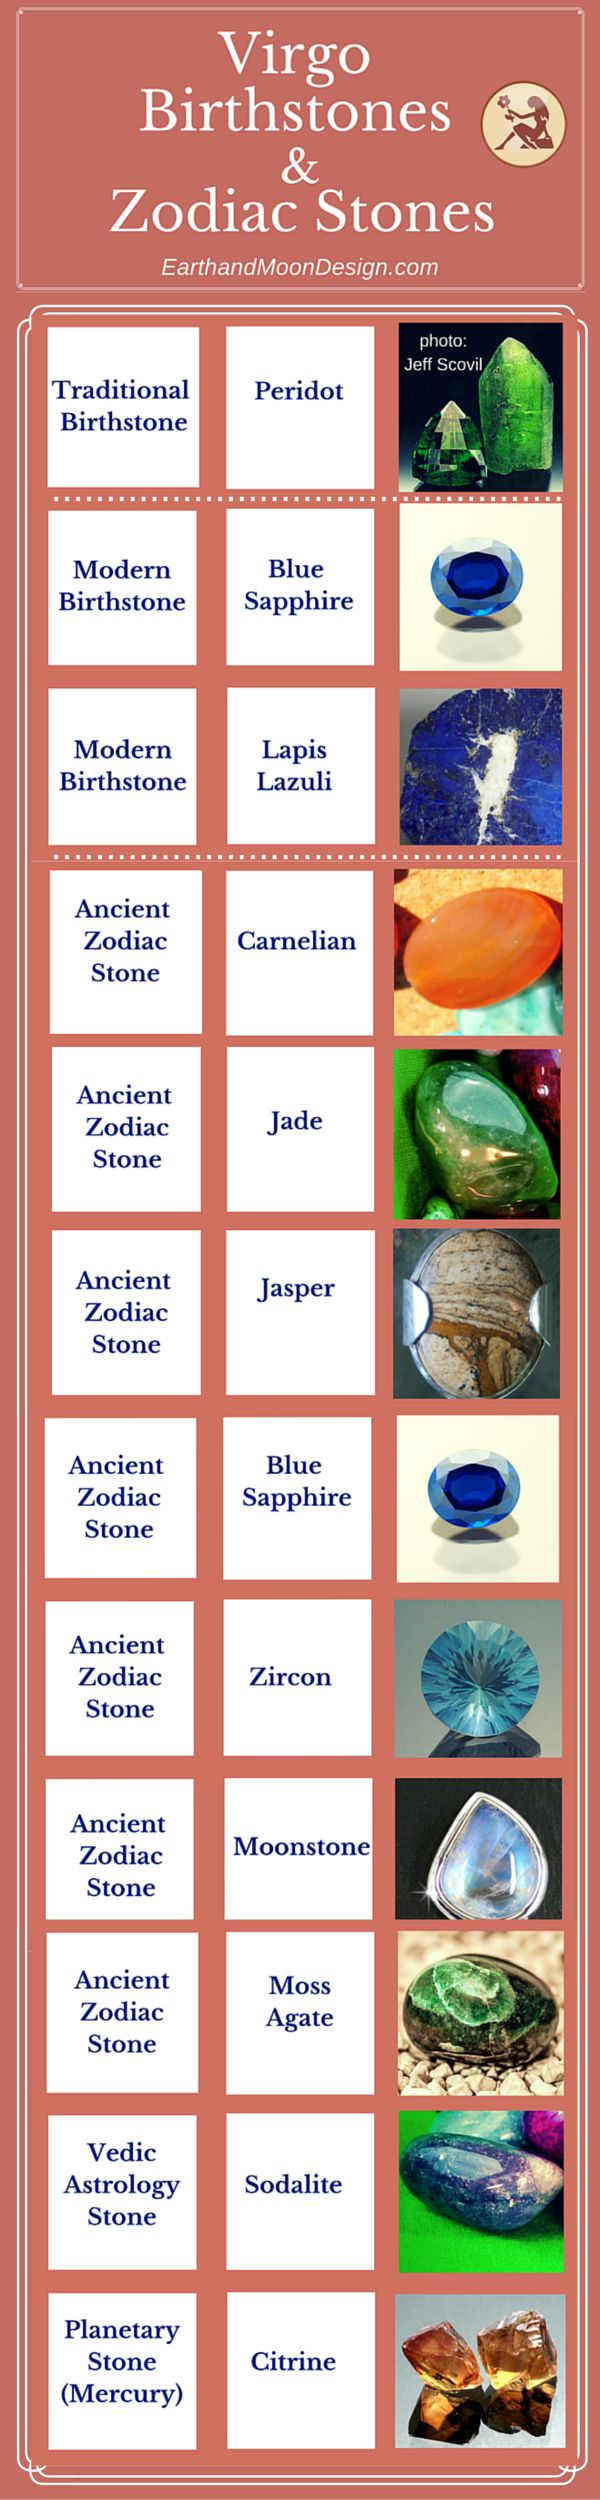 The Virgo Woman Birthstone Jewelry Gifts Birthstones Virgo Birthstone Virgo Women